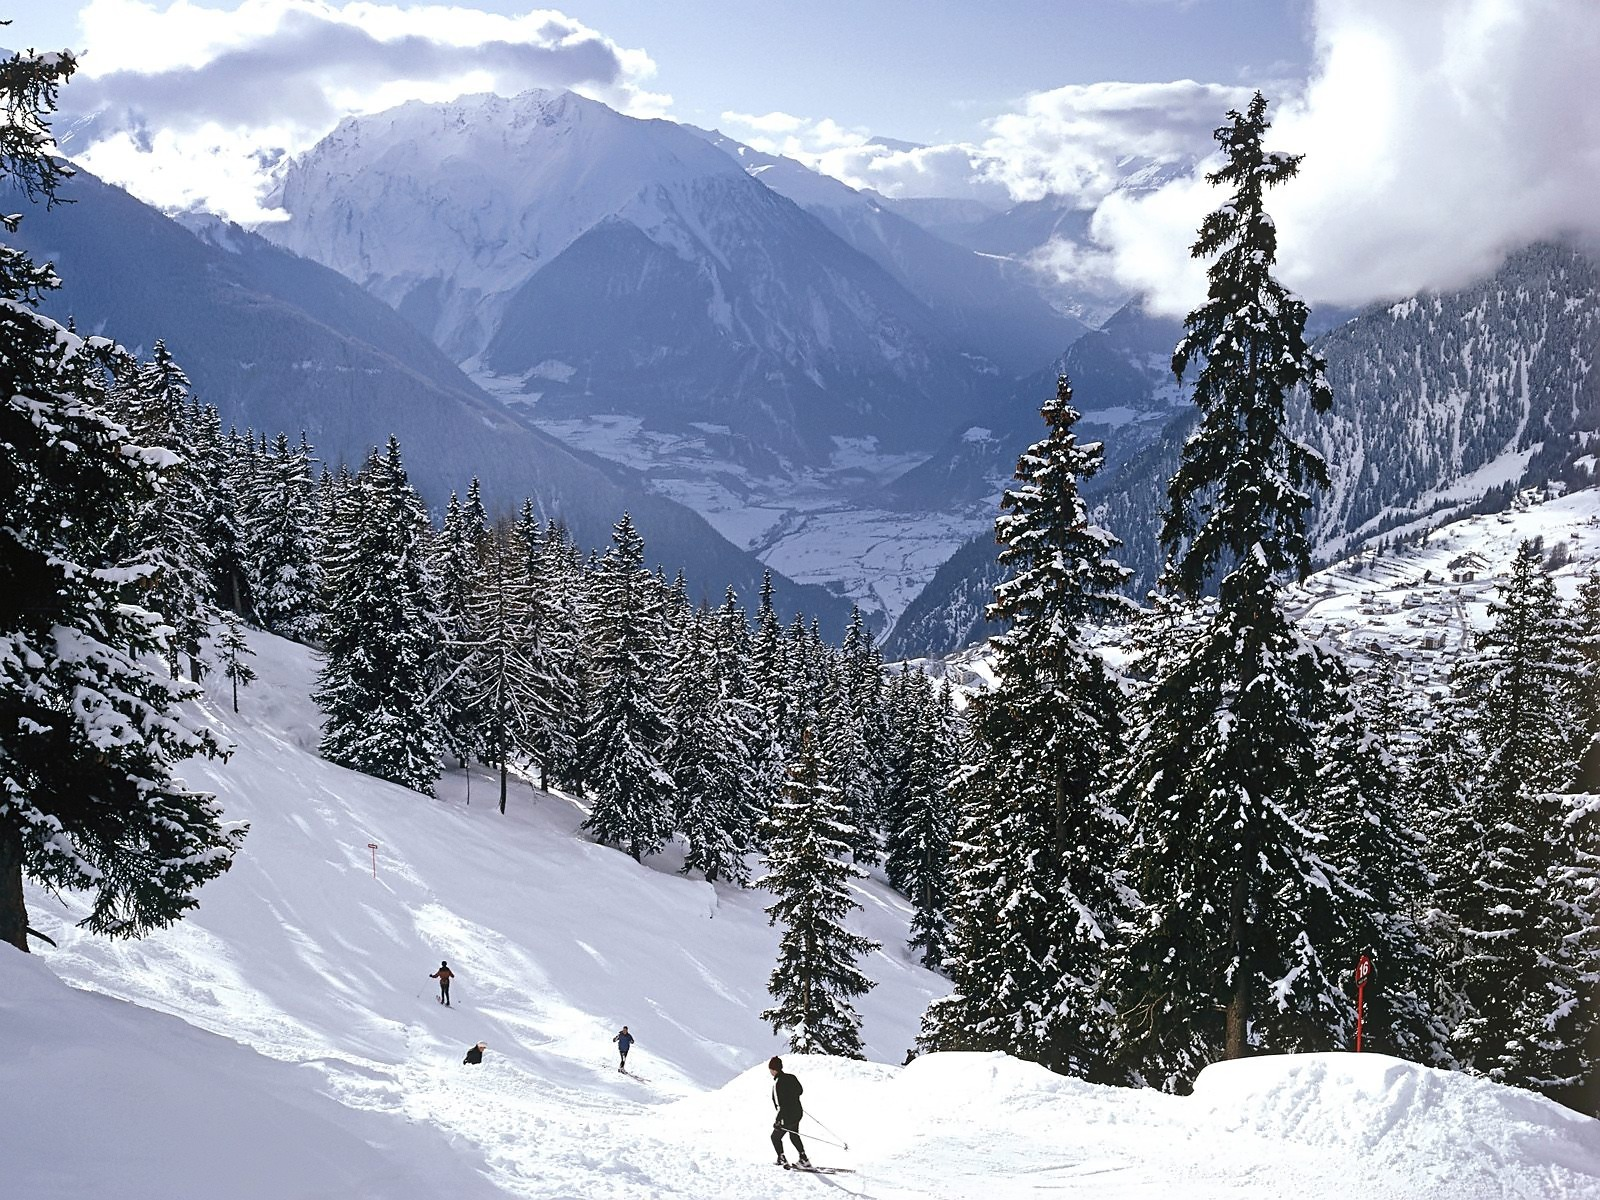 skiing wallpaper ski sports wallpapers in jpg format for free download